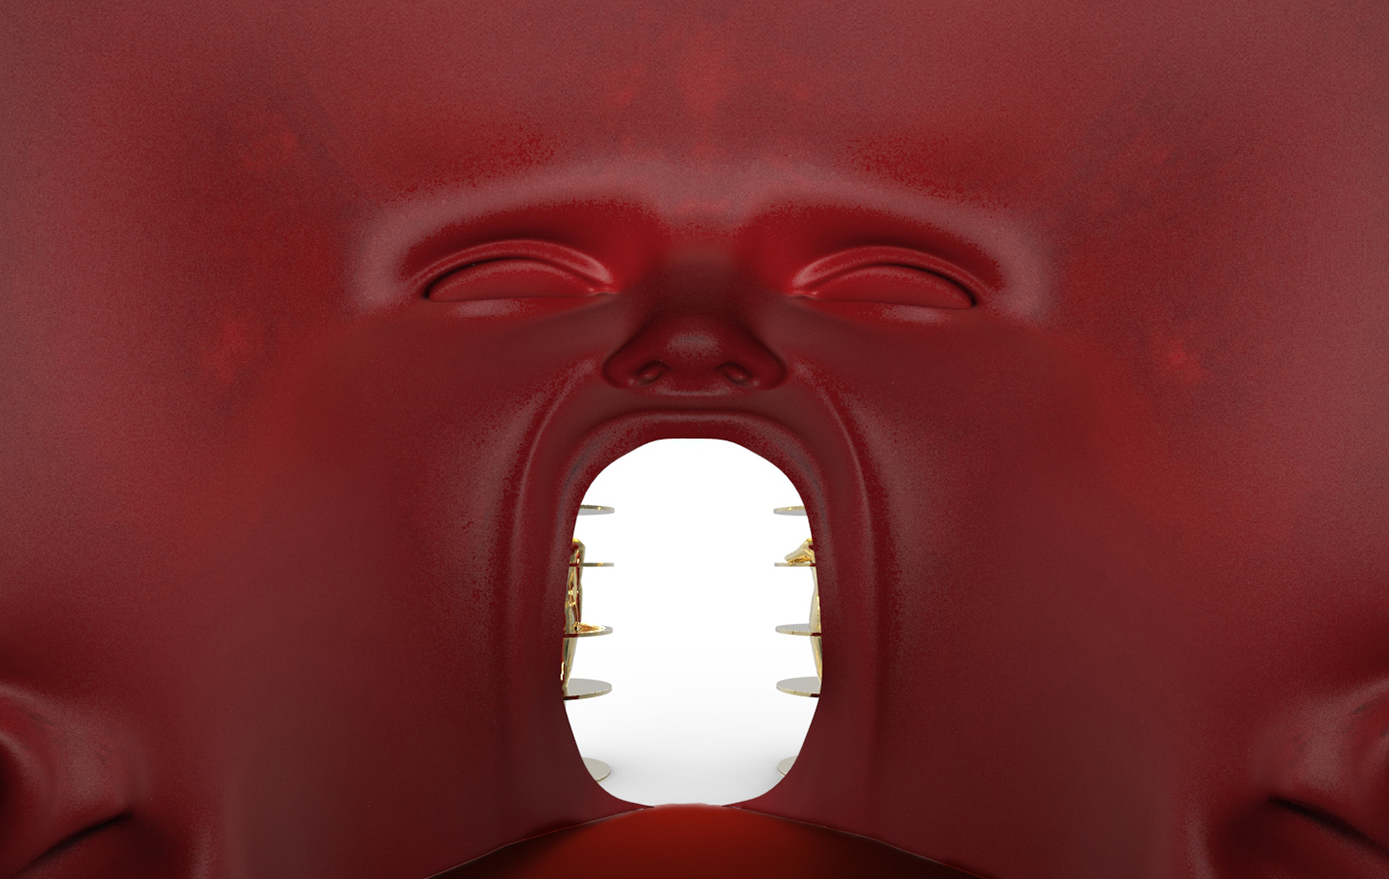 The inside of the egg-head designed by Fabio Novembre.